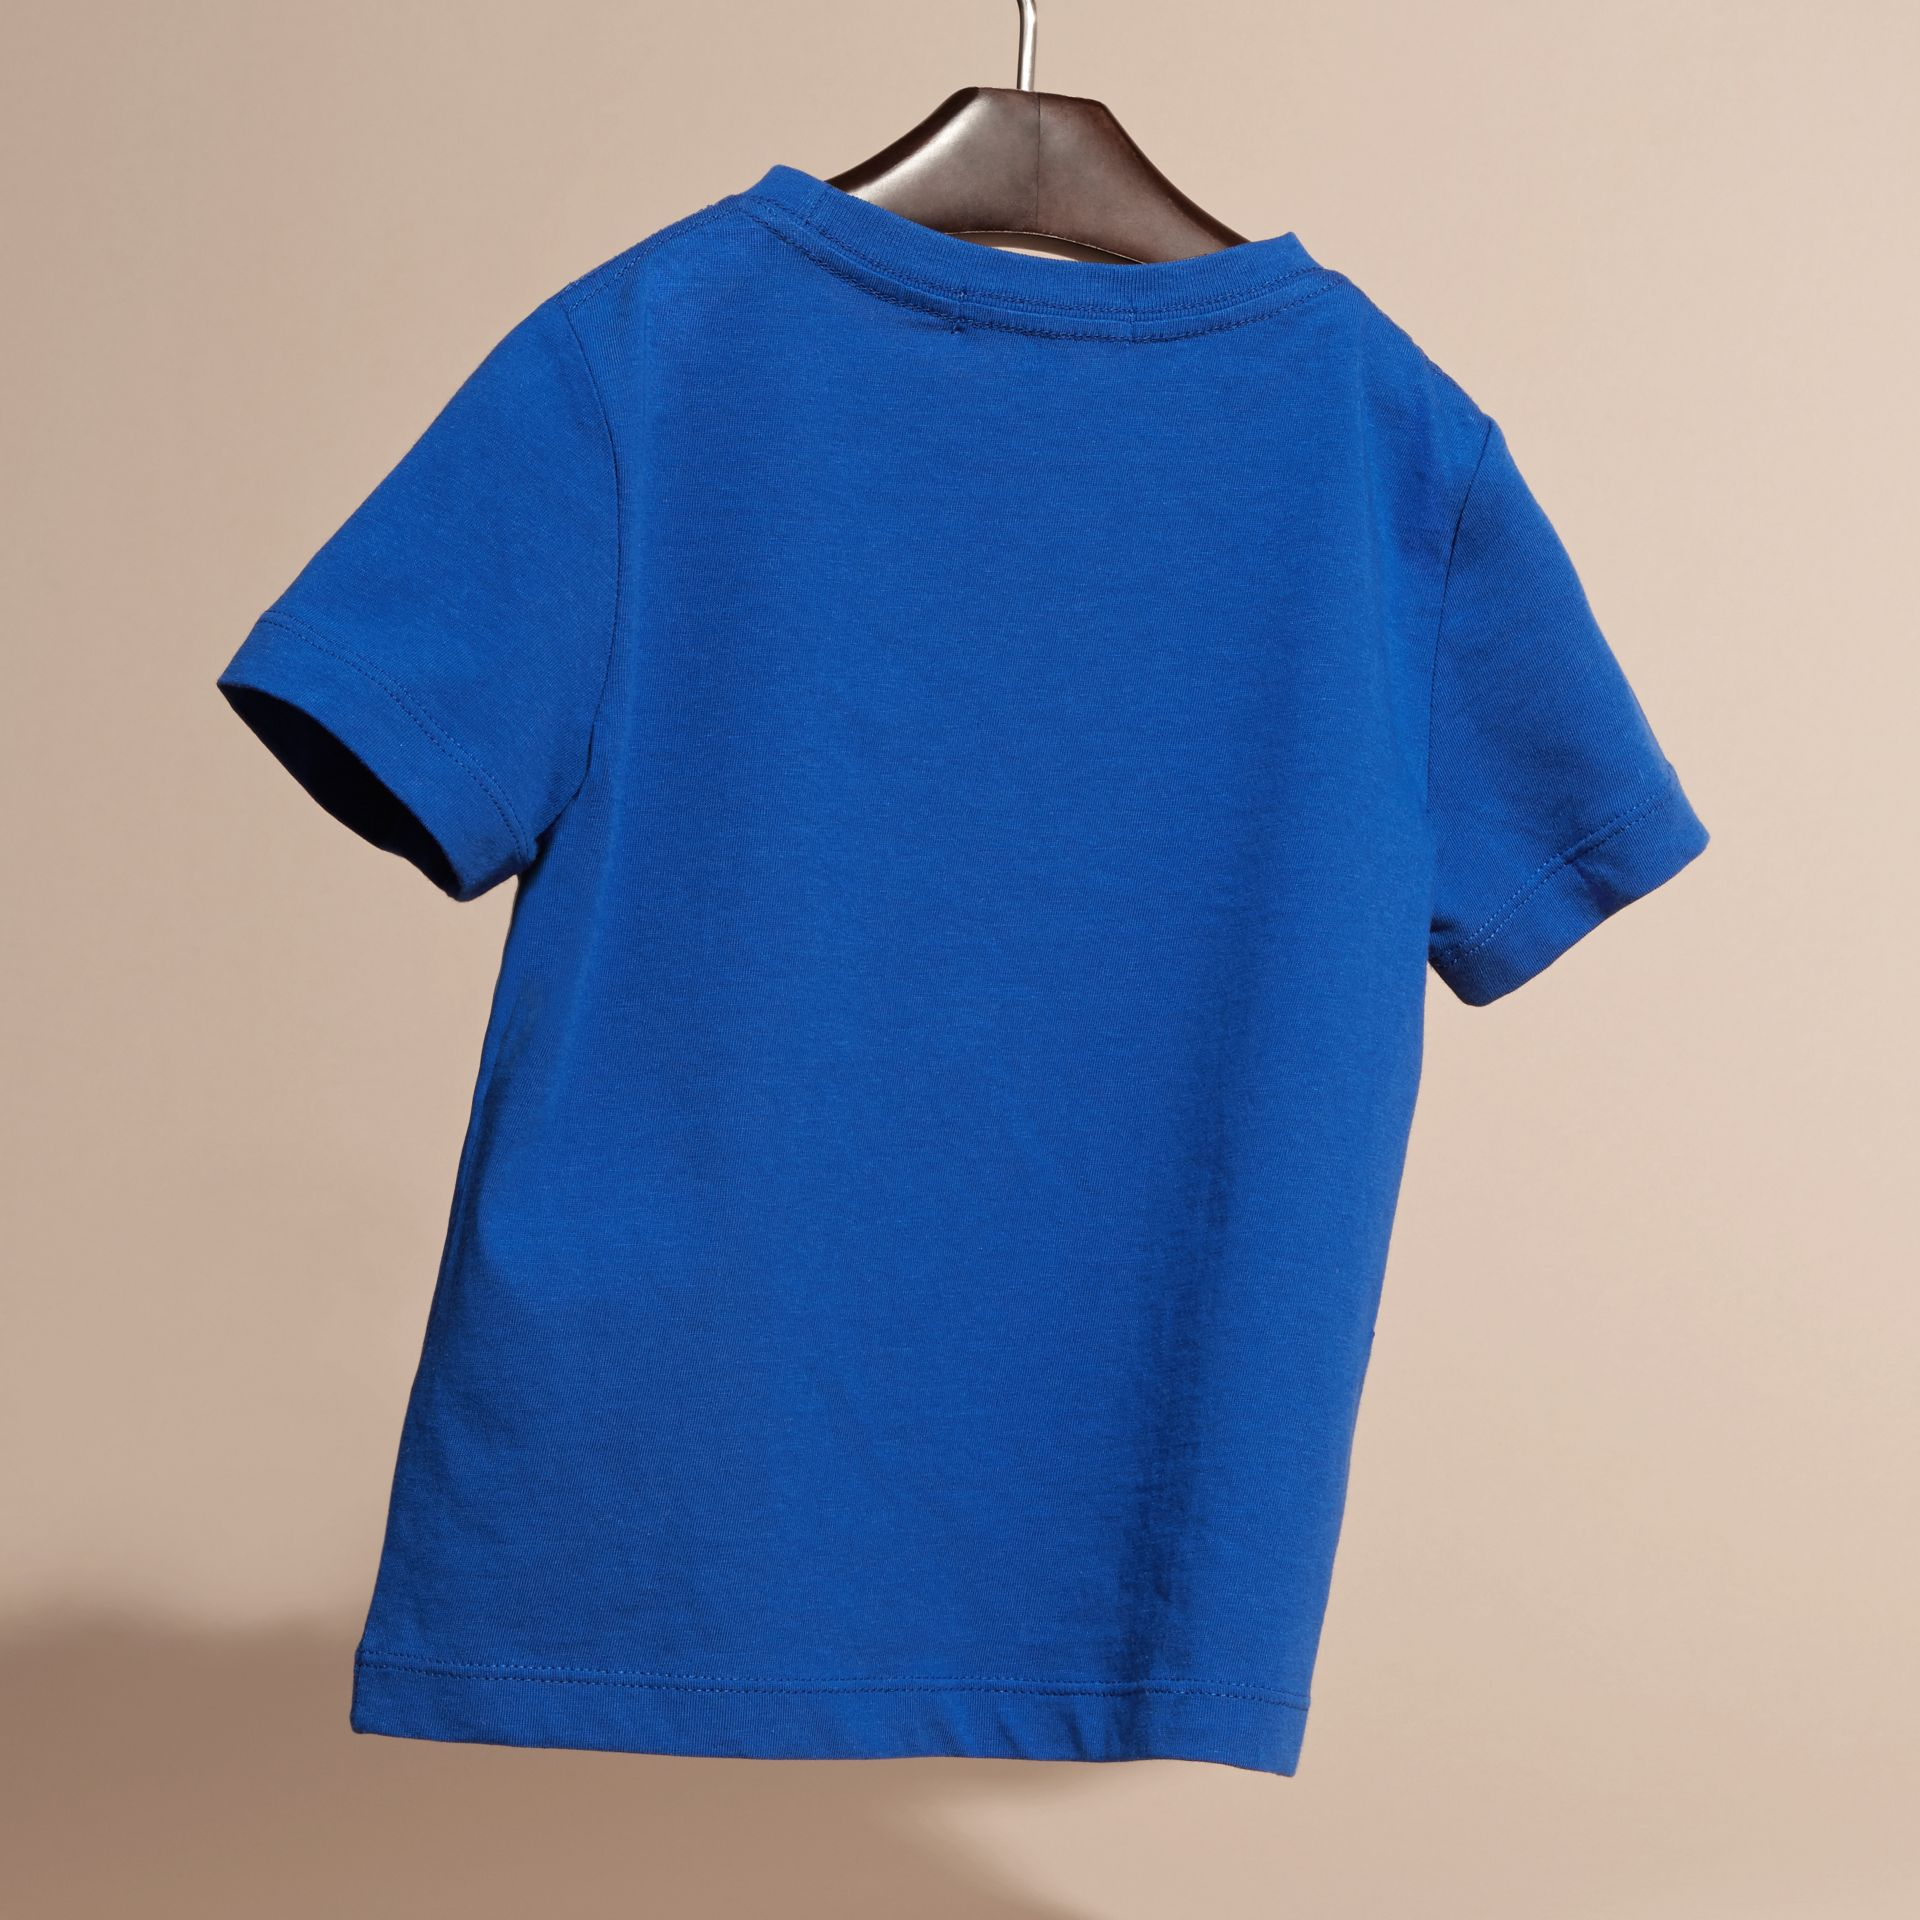 Brilliant blue Check Pocket T-Shirt Brilliant Blue - gallery image 4